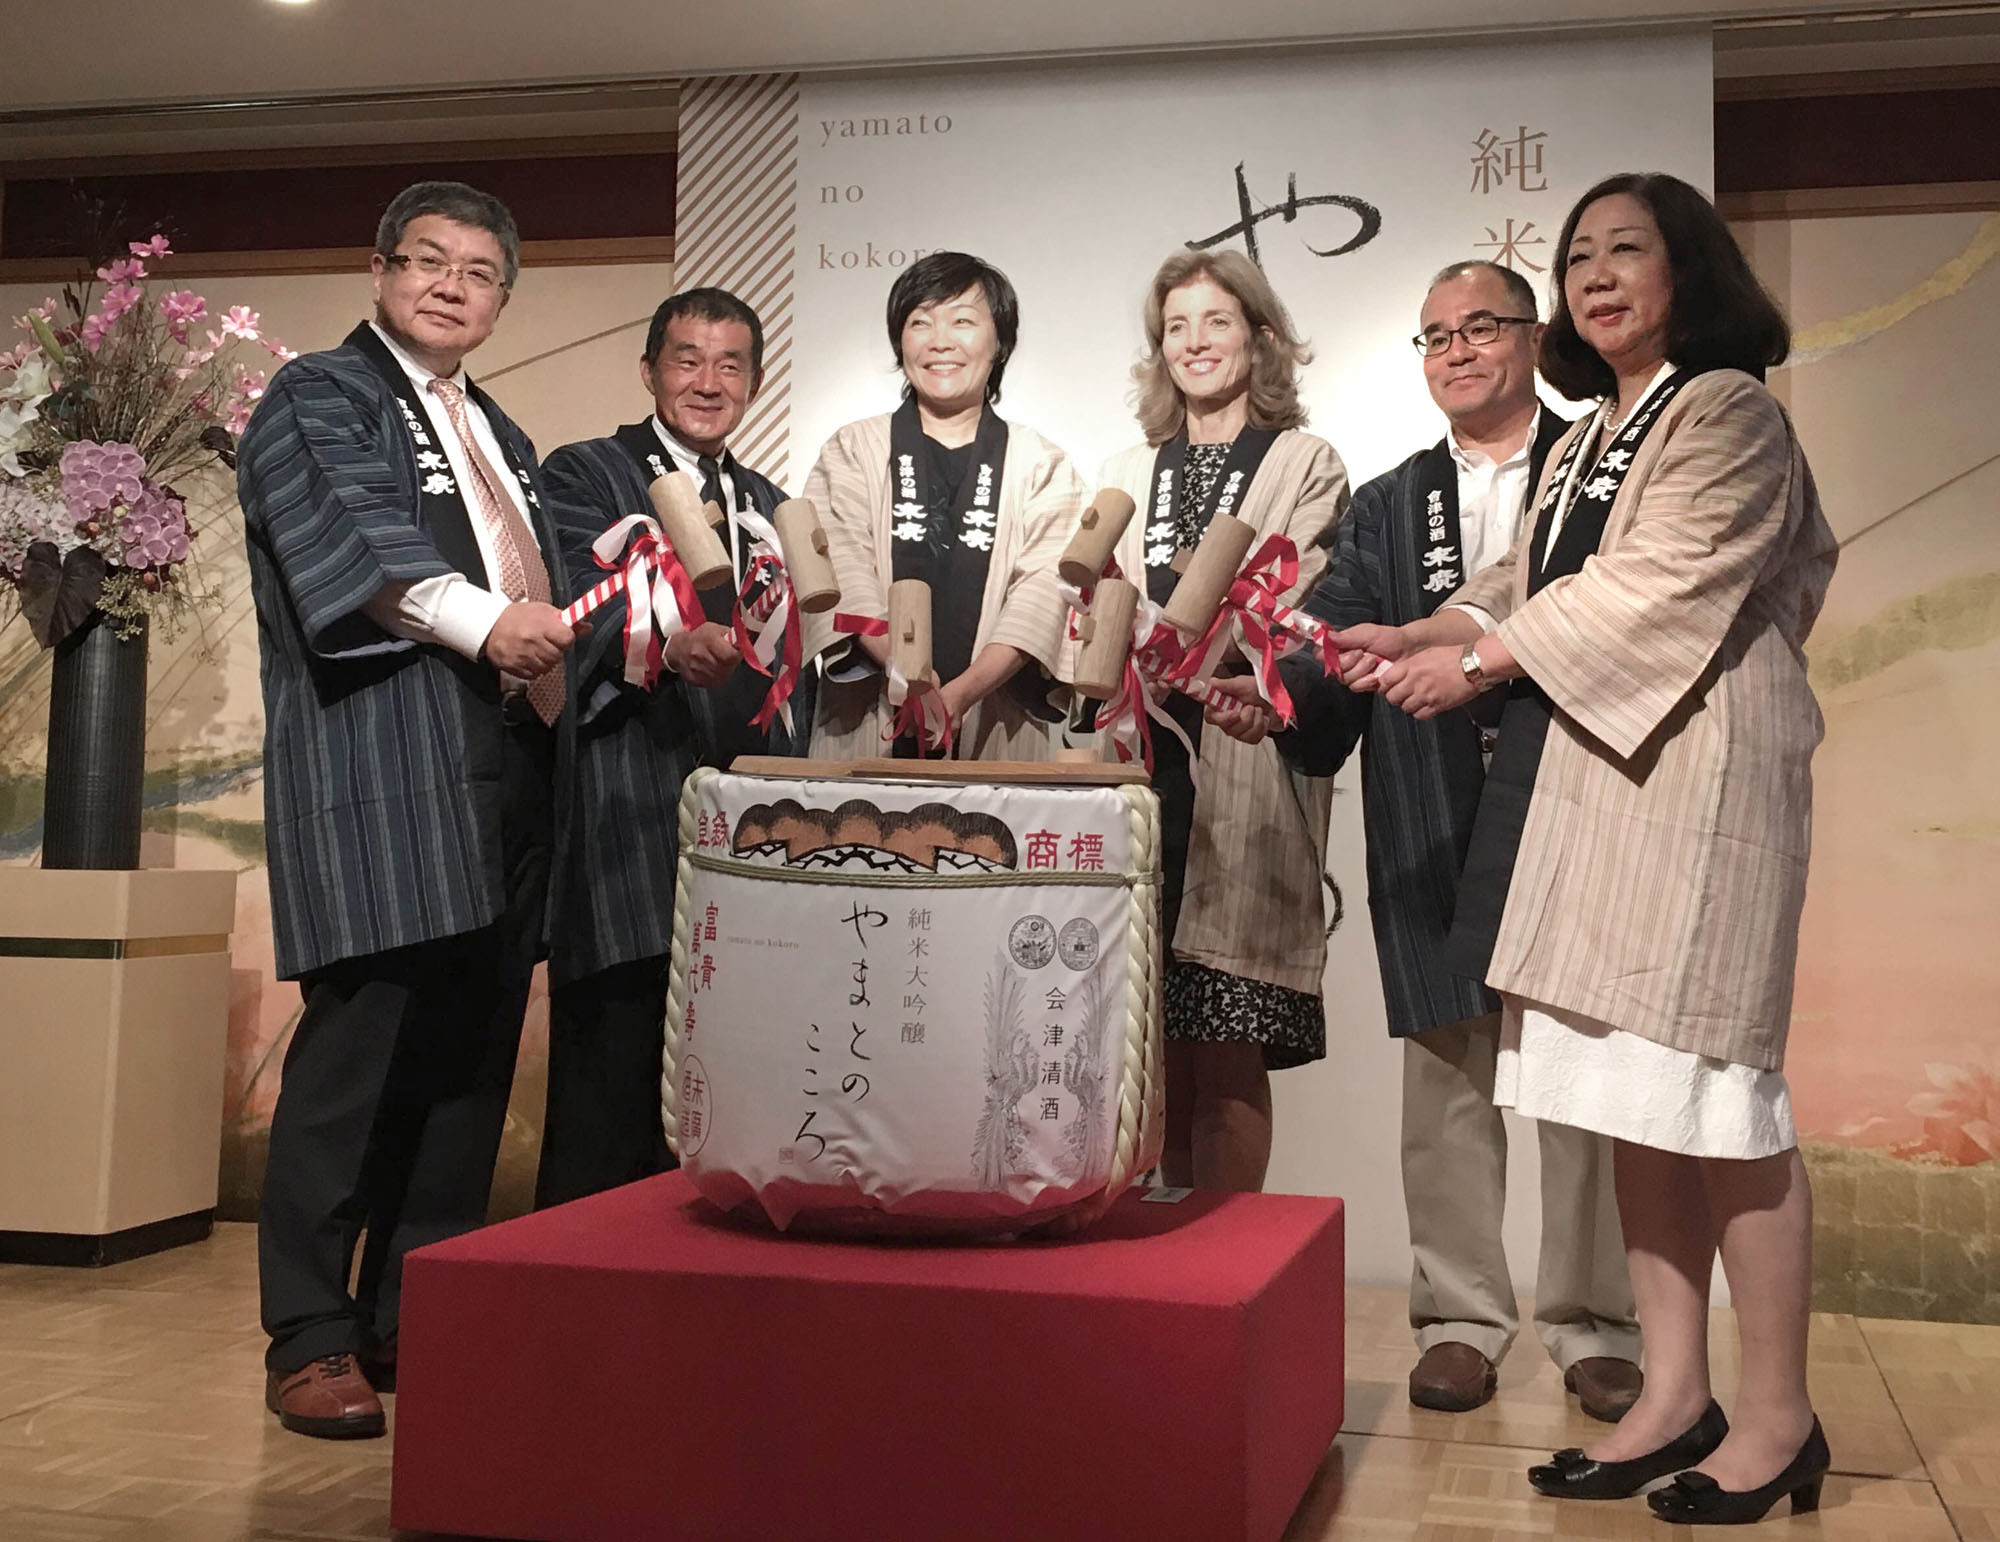 "First lady Akie Abe (3rd from left) opens a barrel of newly made ""Yamato no Kokoro"" (Spirit of Japan) sake with, from left, Inokichi Shinjo, president of Suehiro Sake Co.,  Hiroshi Uemura from Akie Farm, U.S. Ambassador Caroline Kennedy, Norito Shinmura, founder of Shinmura Design Office and Atsuko Yamada from Yamada Momen Orimoto Cotton Factory to mark the sake's release in Meiji Kinenkan in Tokyo on Sept. 12. The sake, with 750 bottles hitting the market on Oct. 1, was made from rice Abe grew in Yamaguchi Prefecture and brewed in Fukushima Prefecture. 